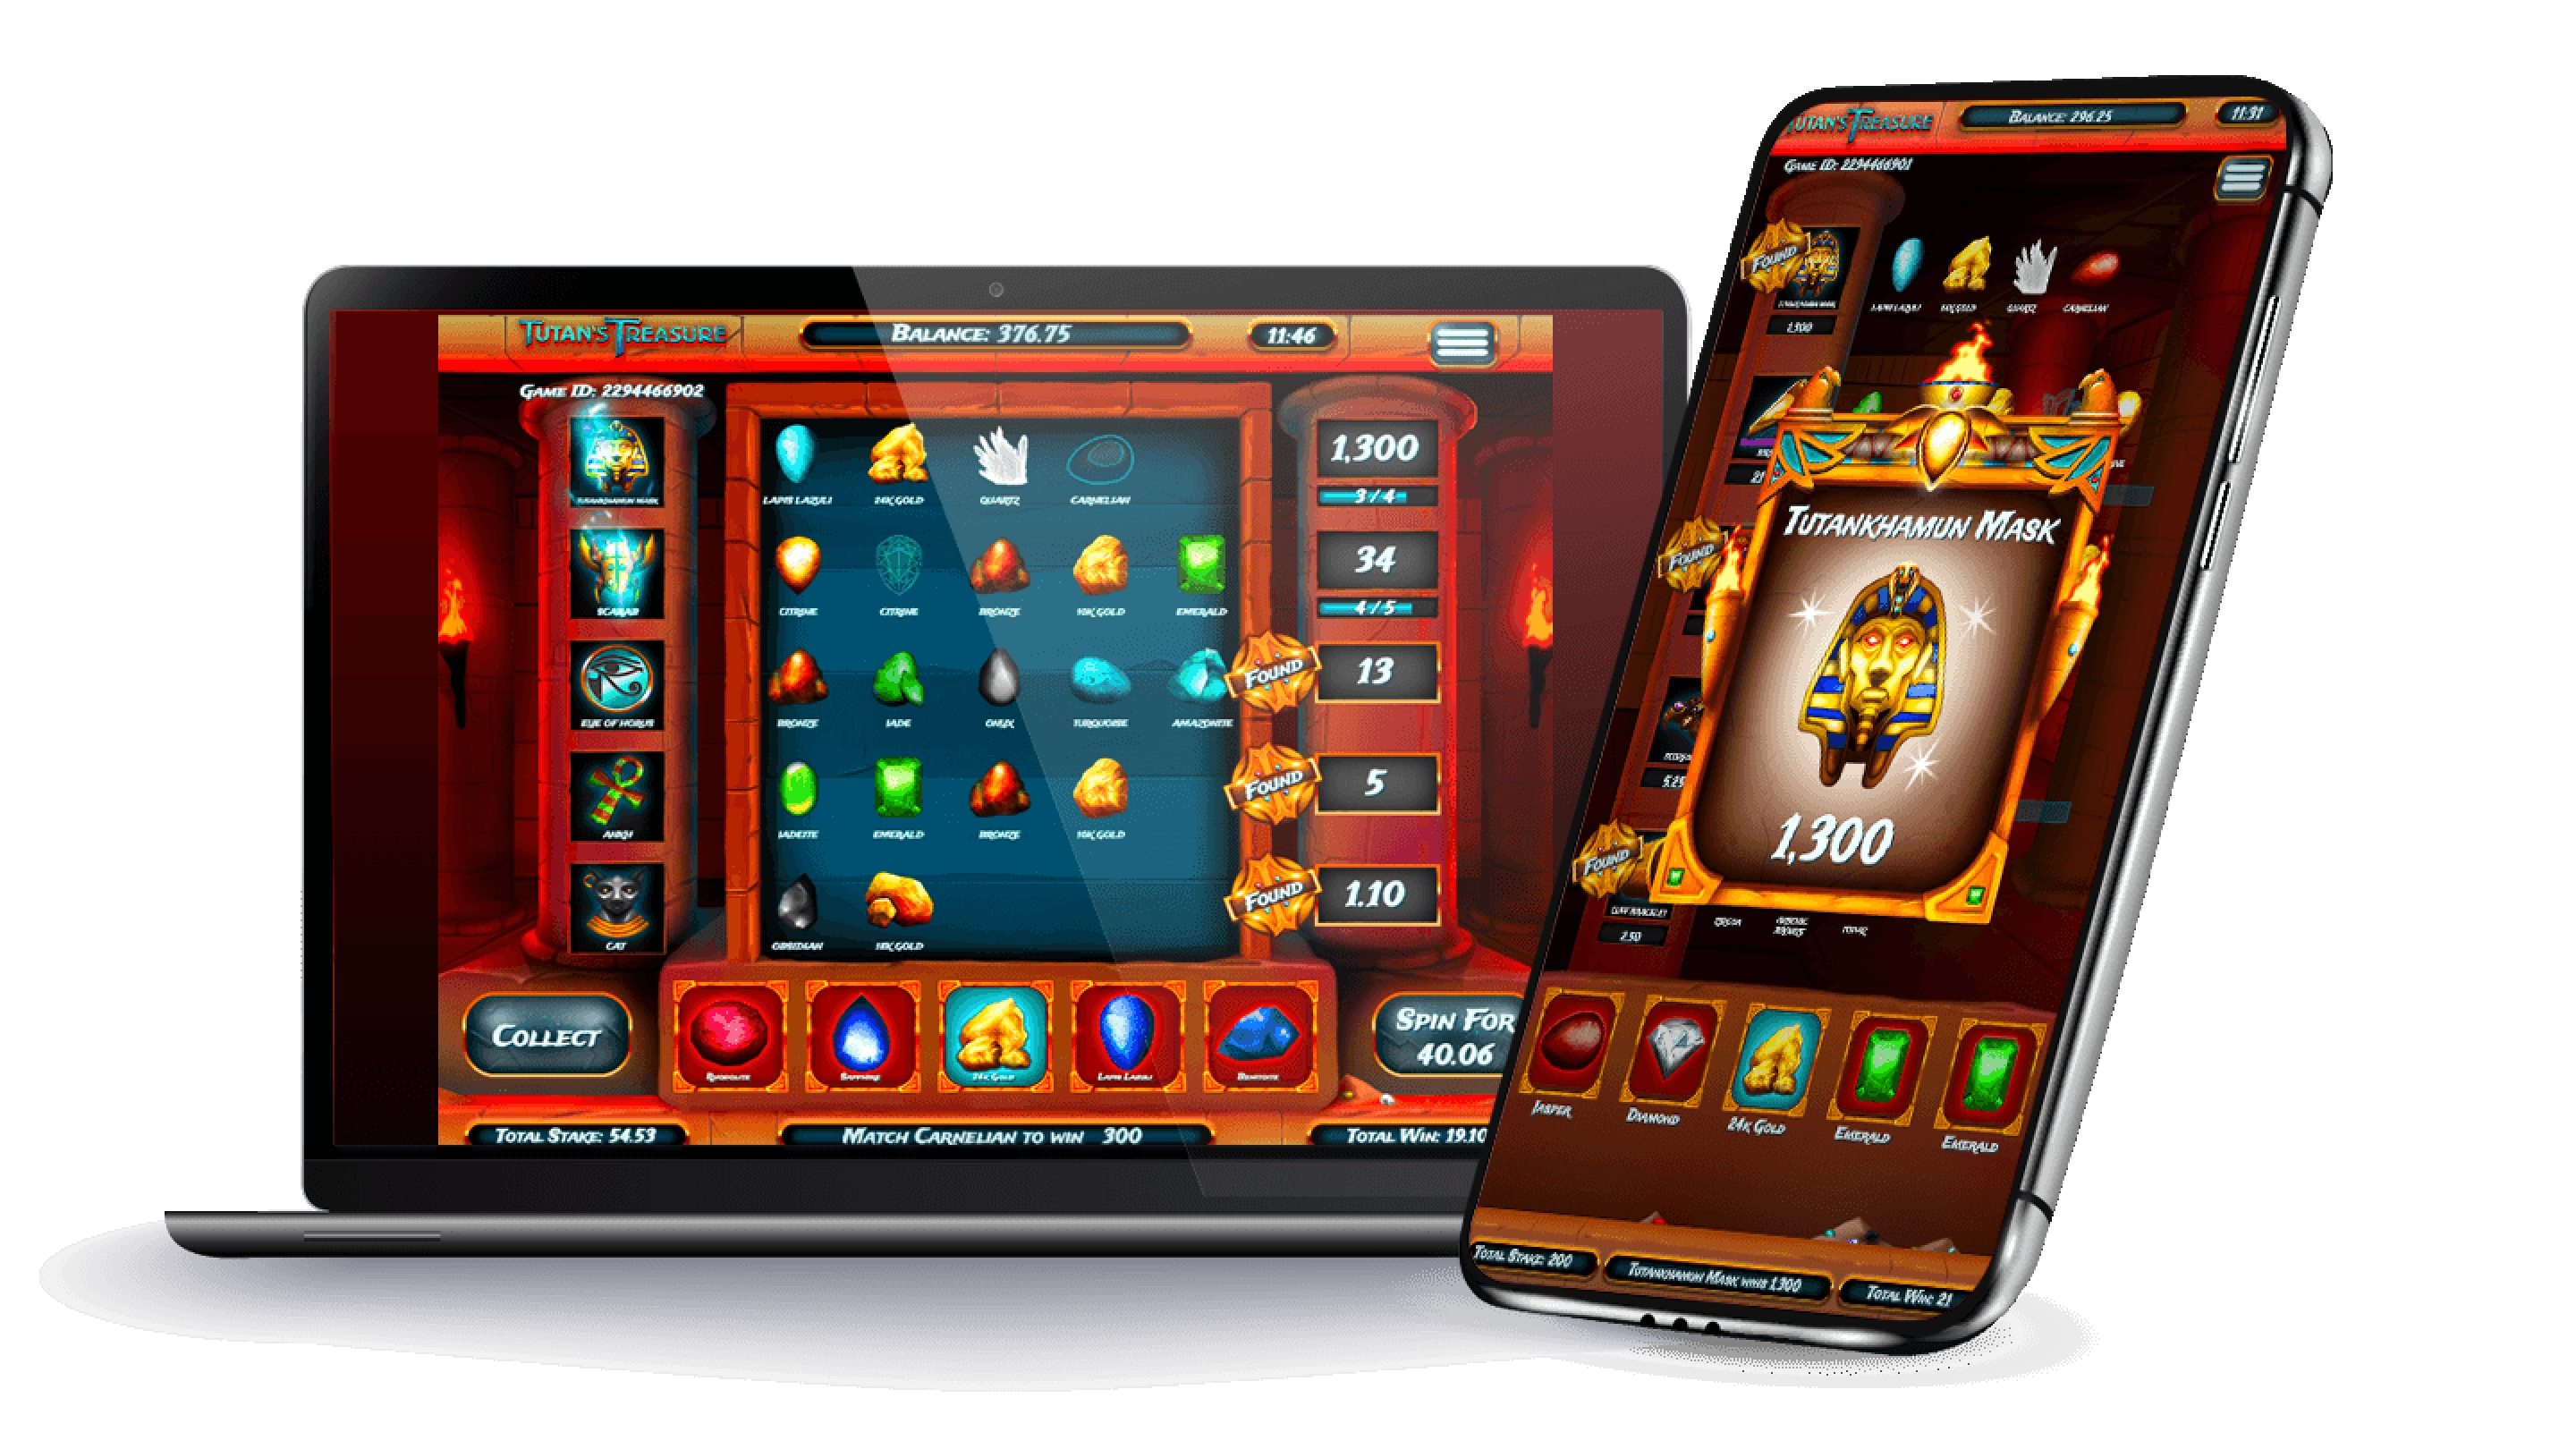 The Tutan's Treasure Online Slot Demo Game by Slingo